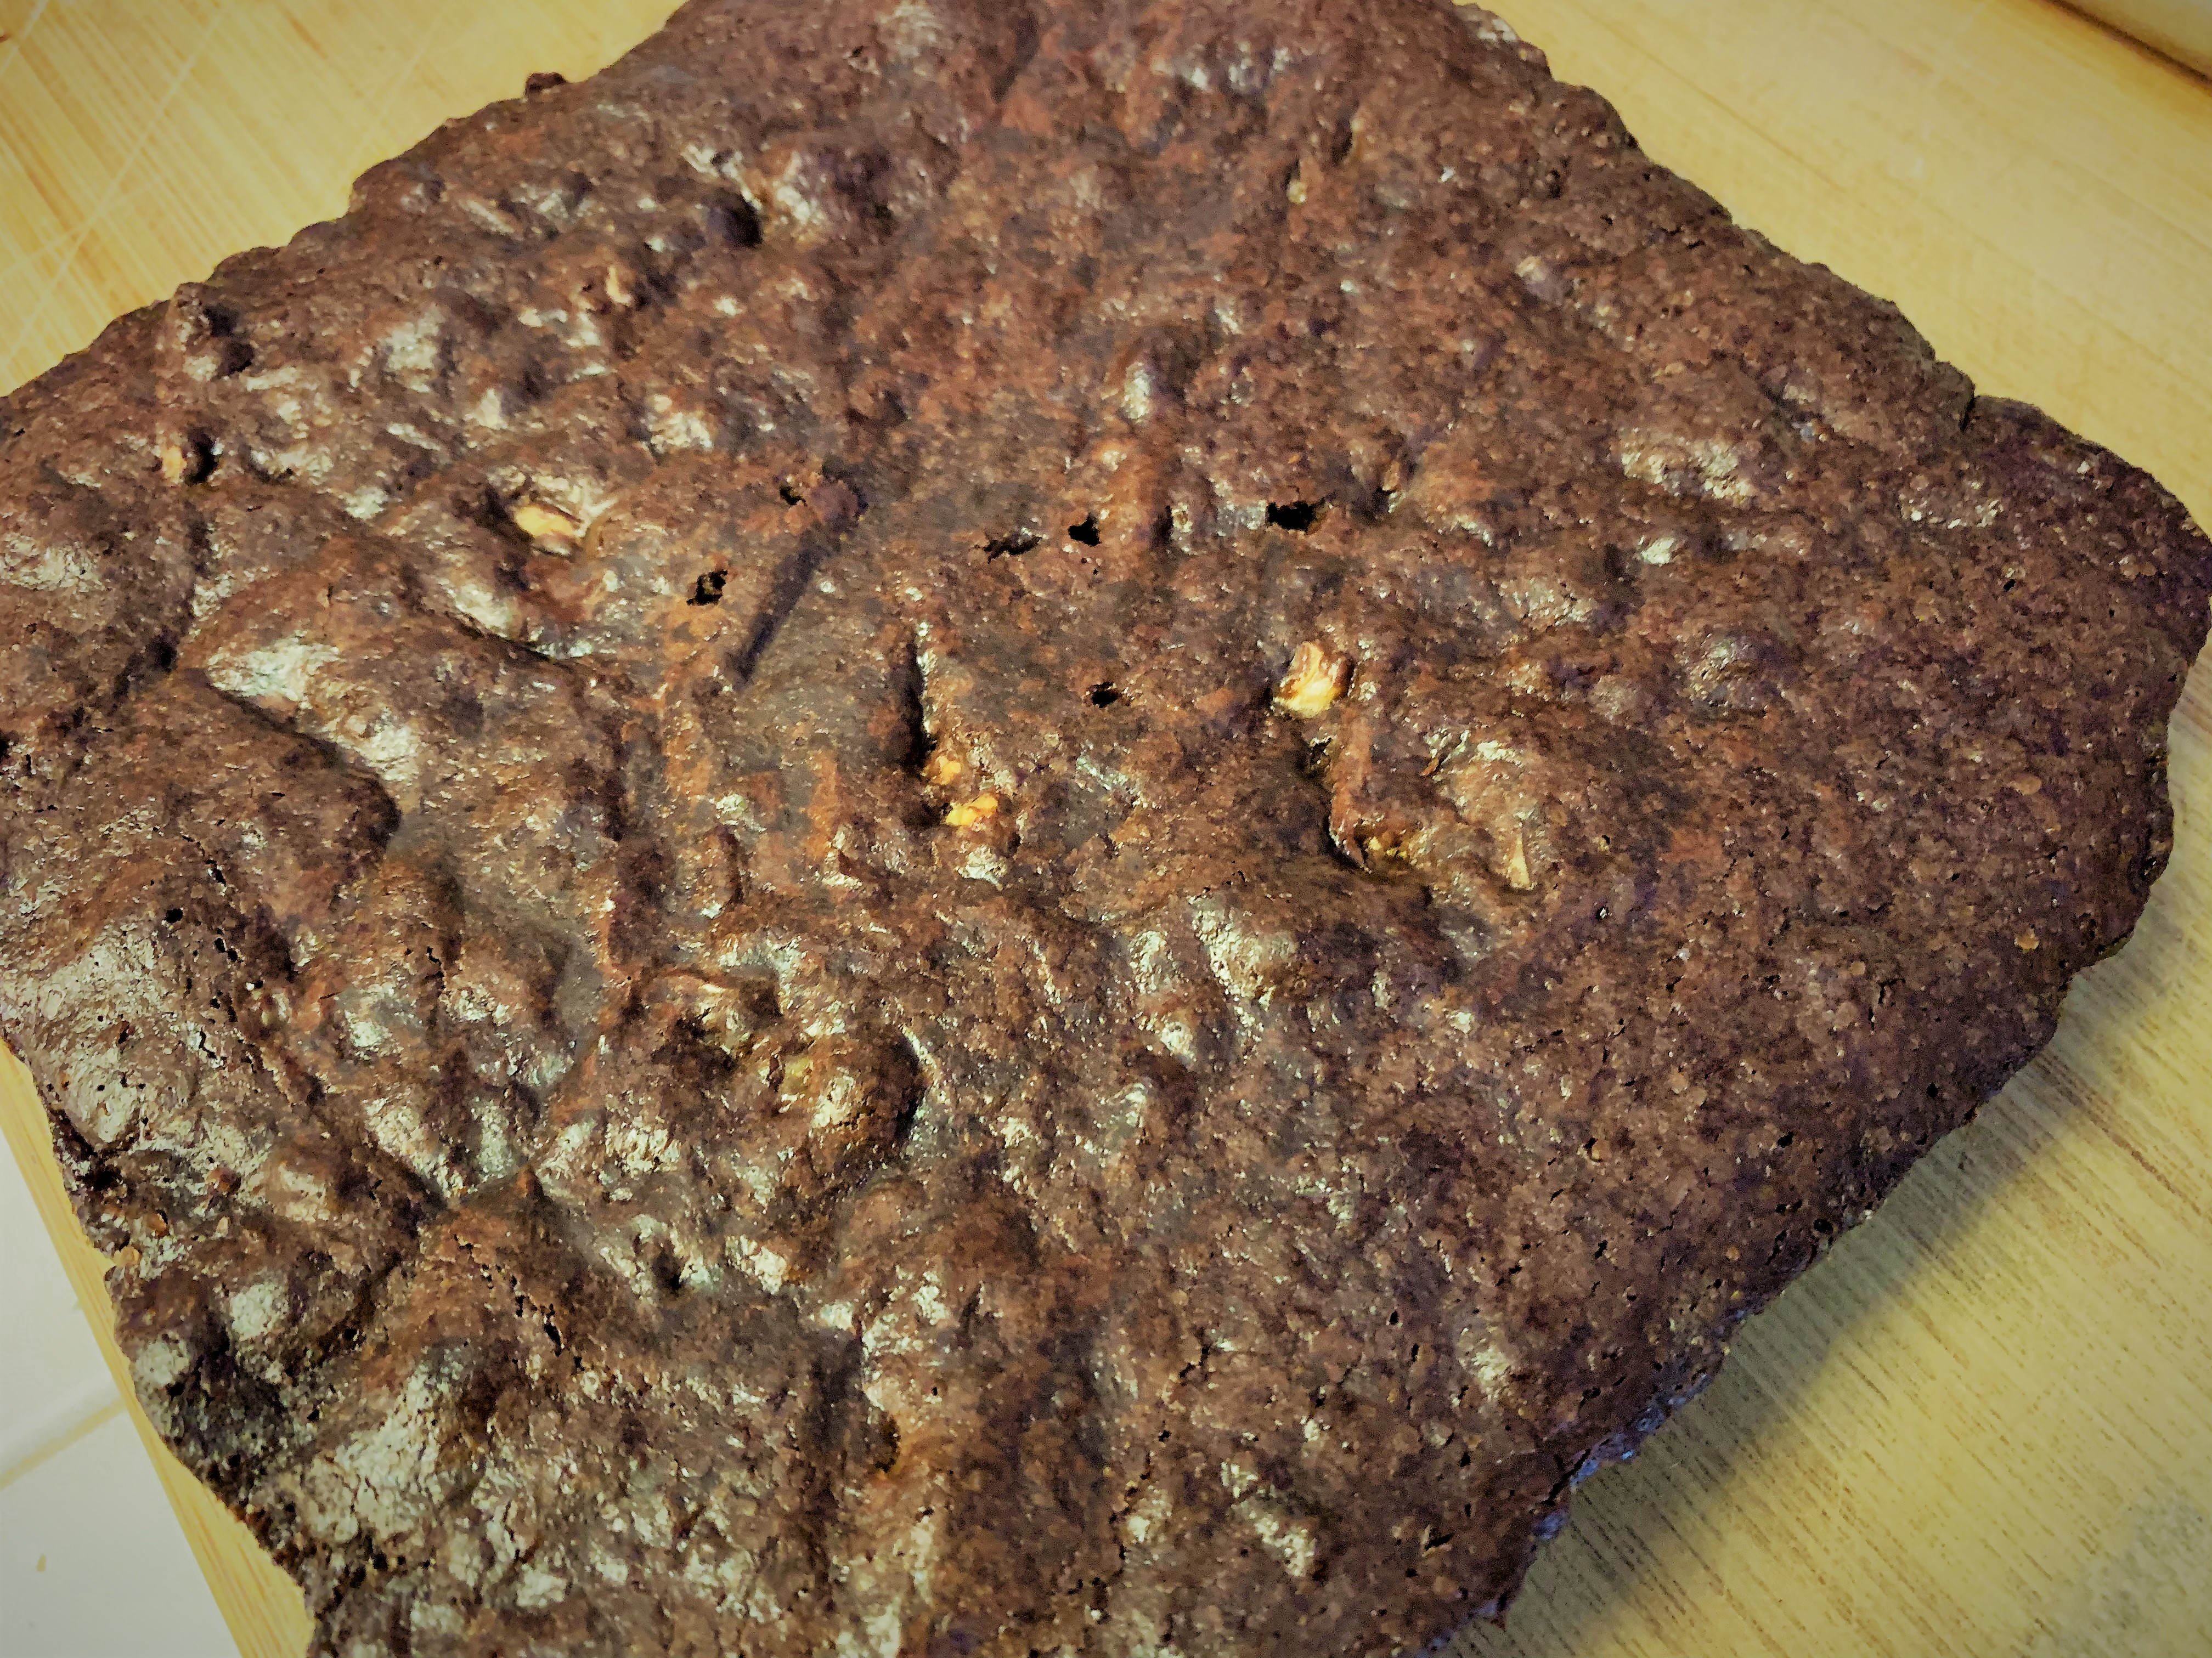 Our completely baked brownies